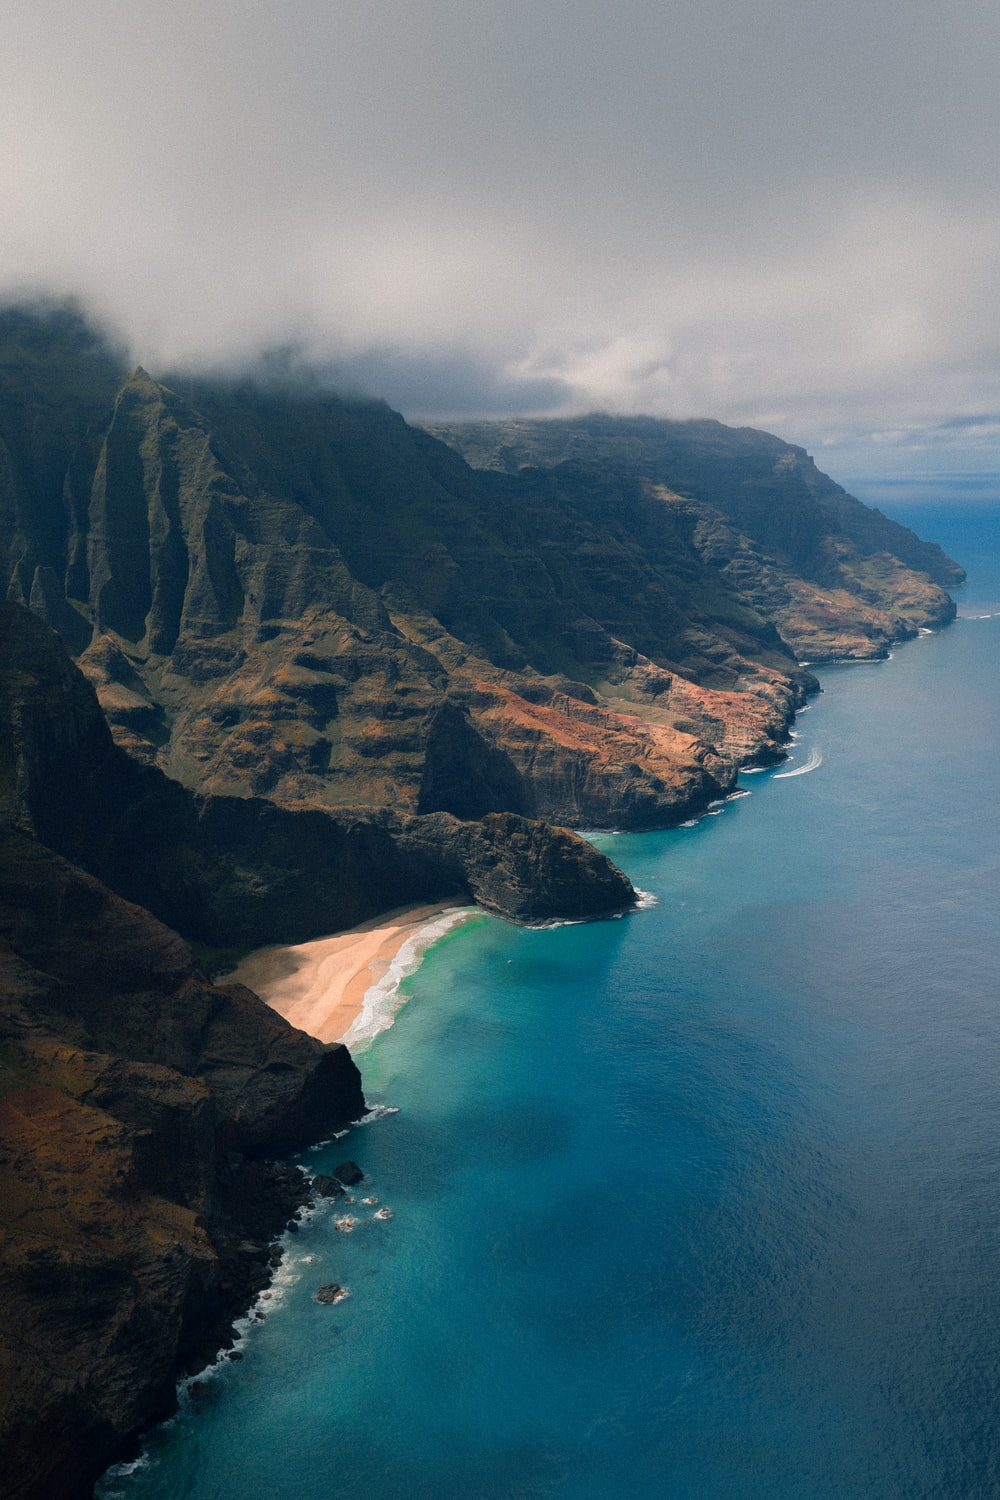 aerial photography of island under cloudy sky